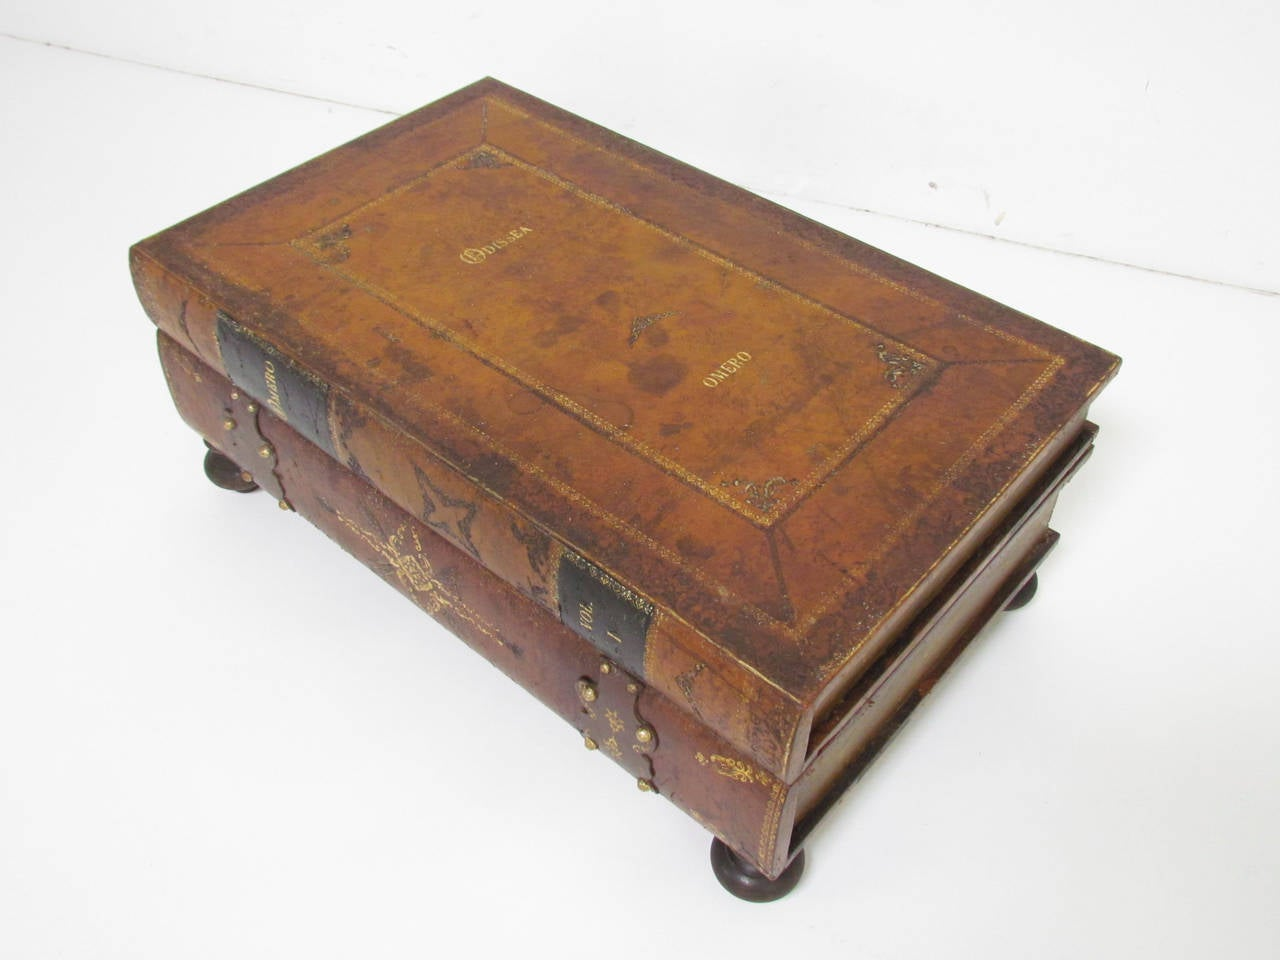 Italian Leather Book Form Table in manner of Maitland - Smith 5